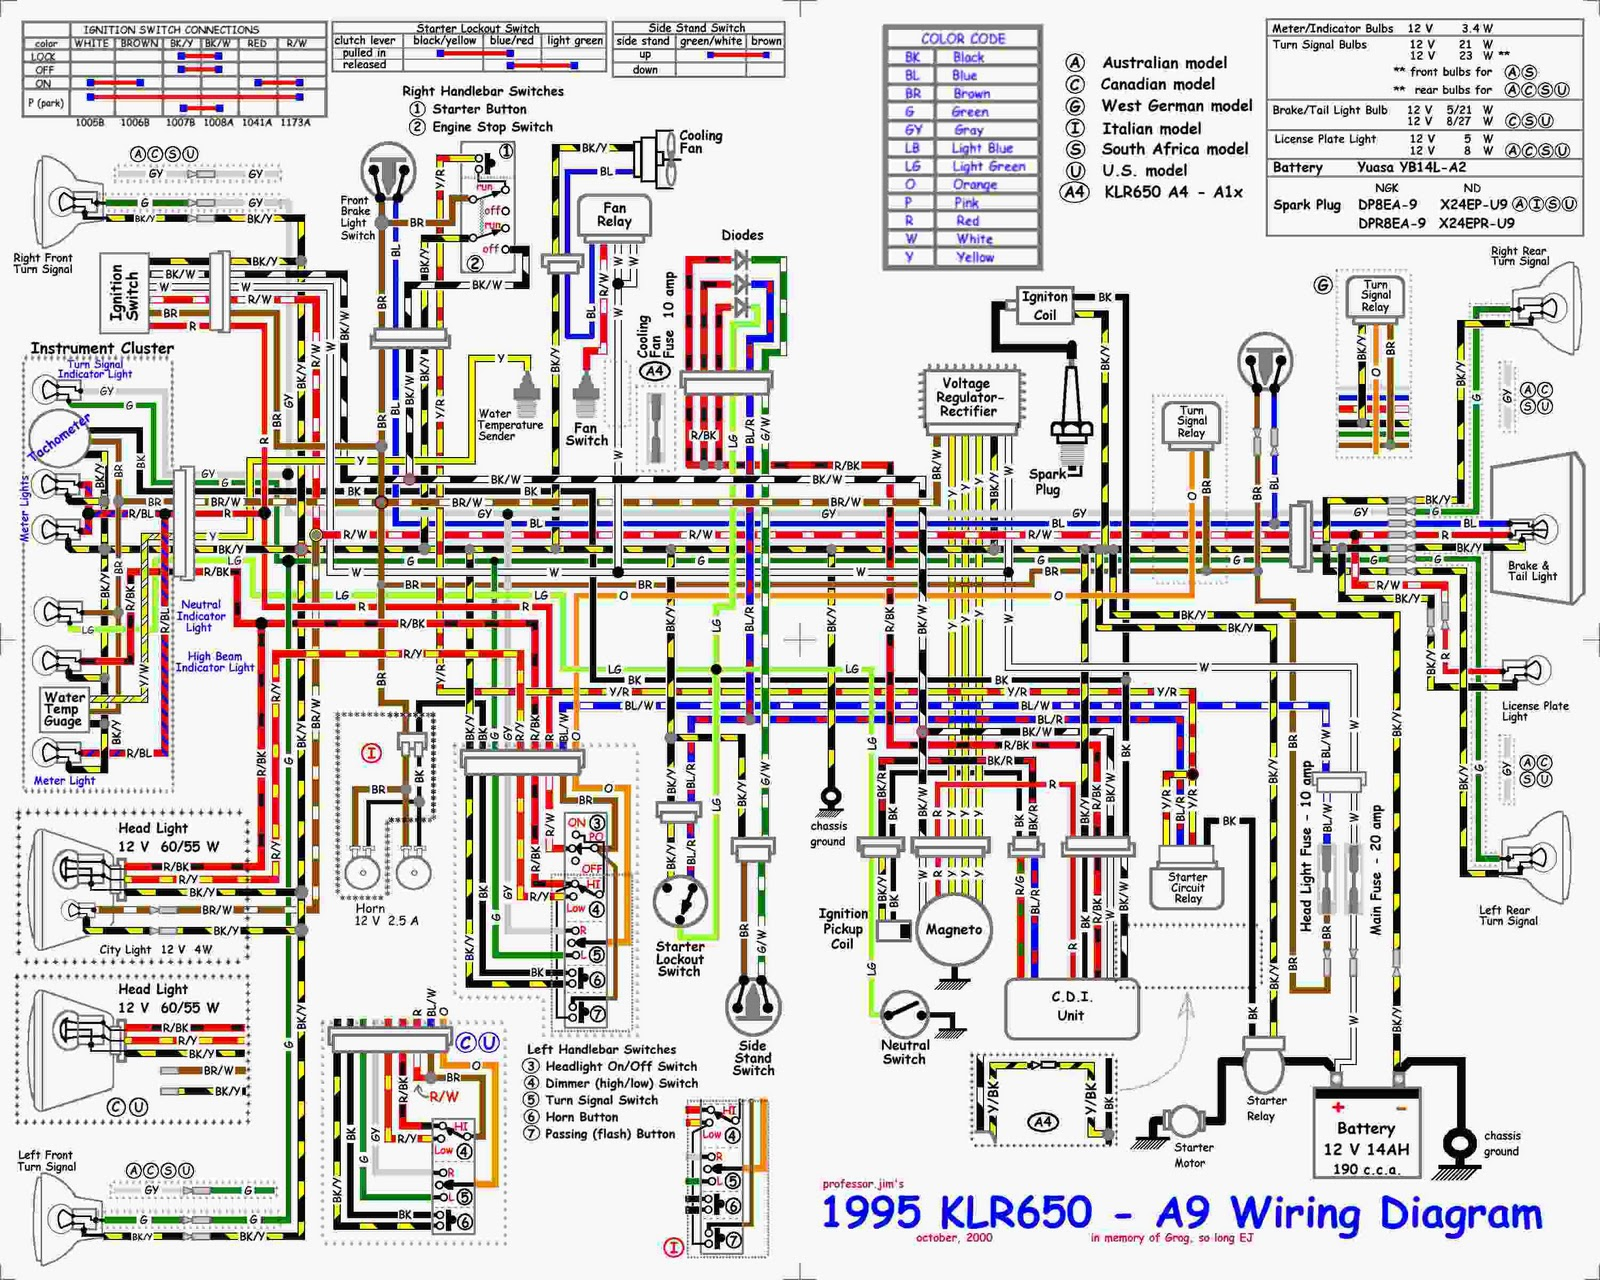 Kawasaki Klr Wiring Diagram on 1995 Honda Accord Ignition Wiring Diagram